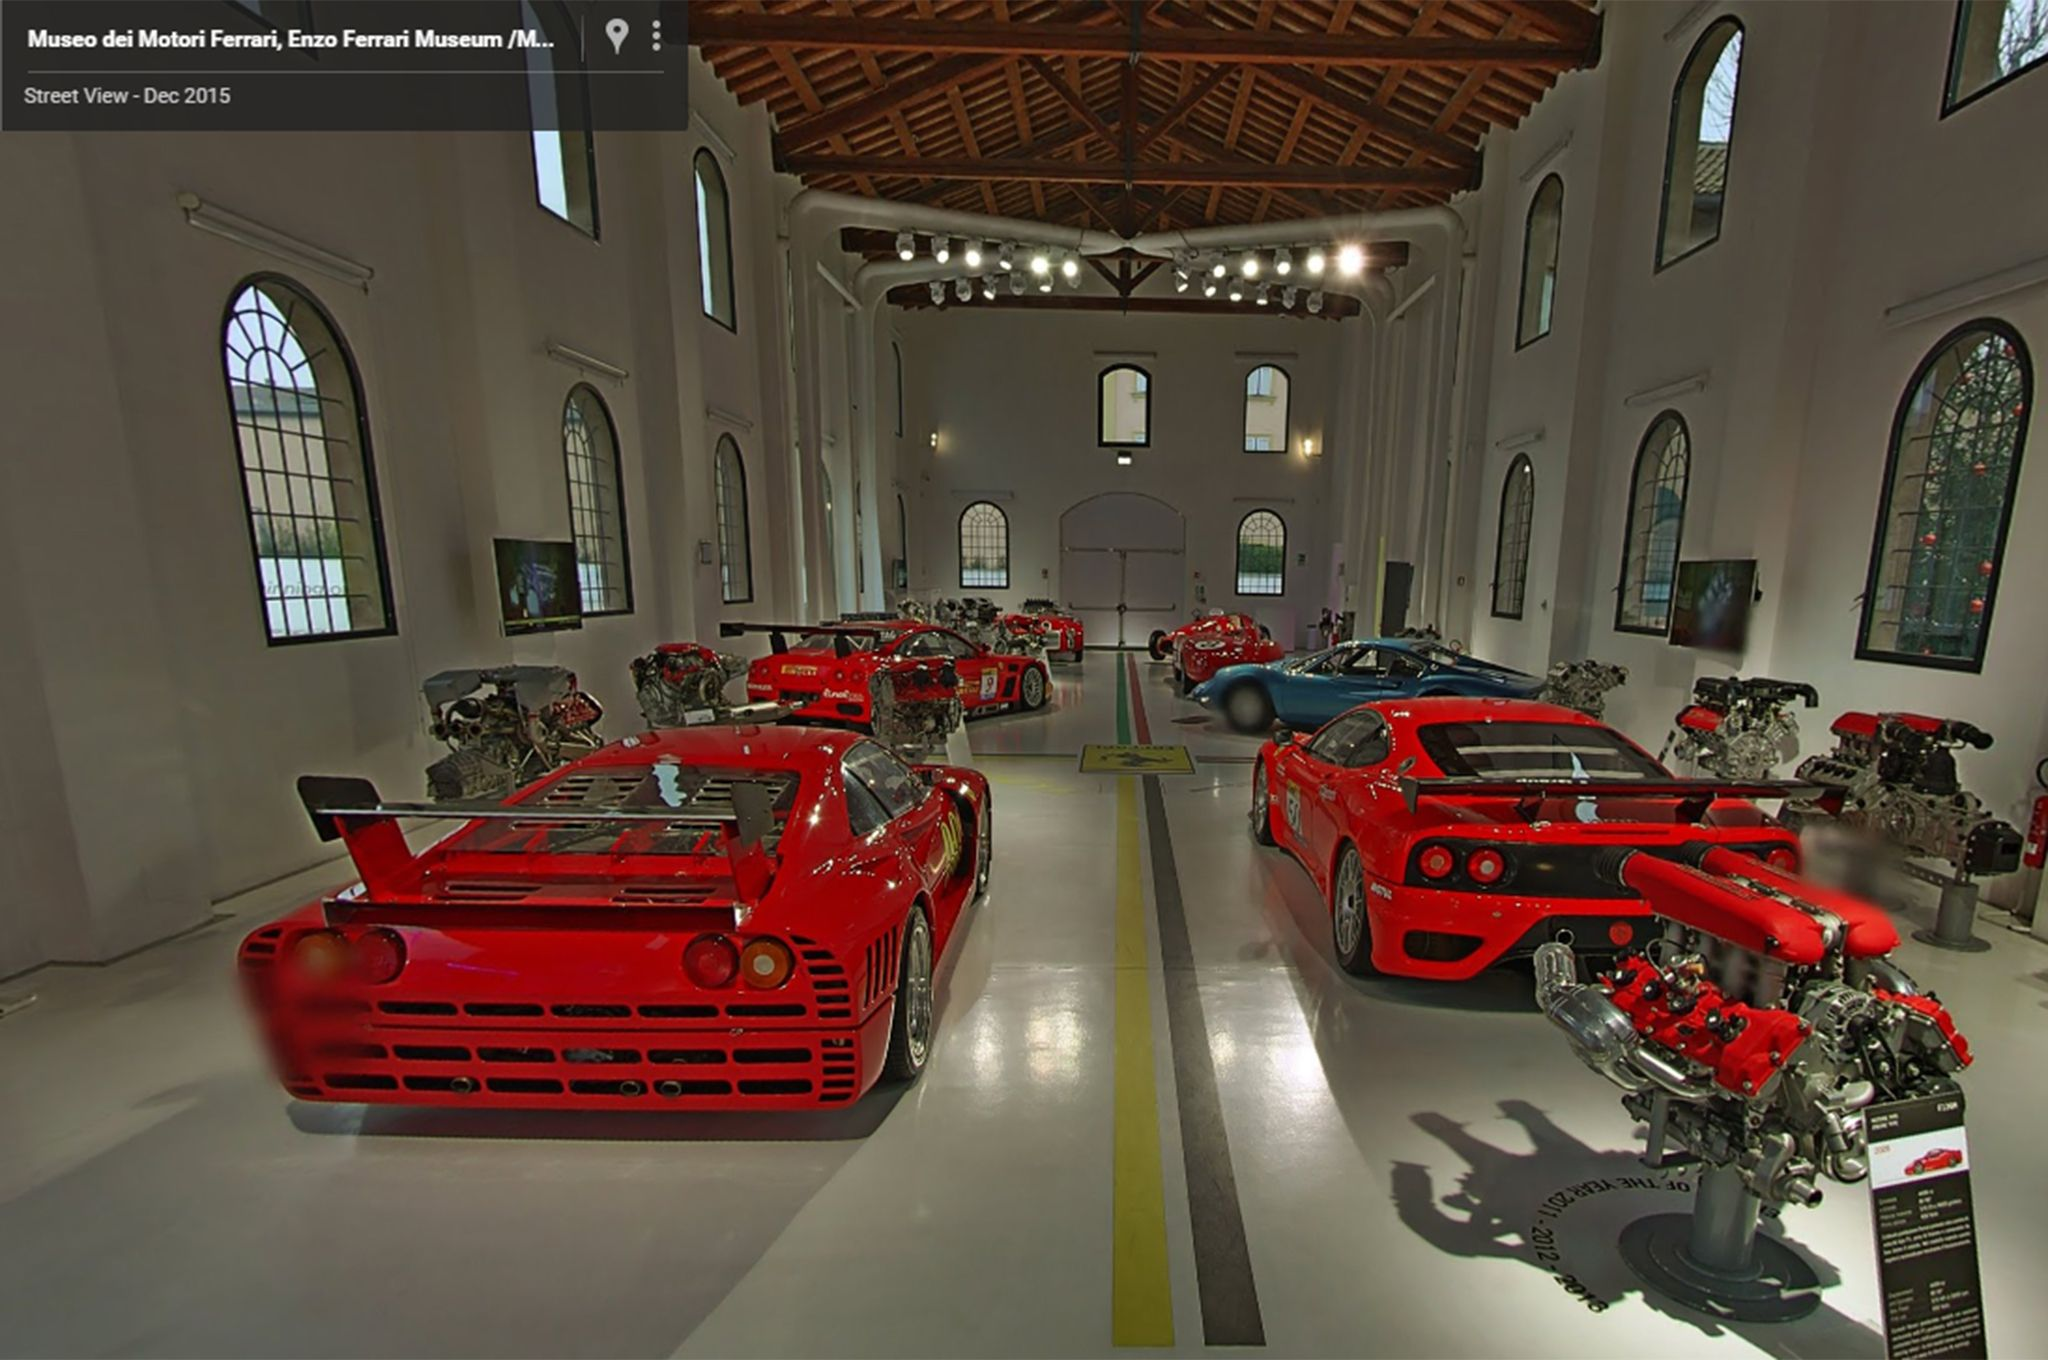 Garage Automobile Tours Take Three Virtual Tours Of Ferrari Museums In Google Street View